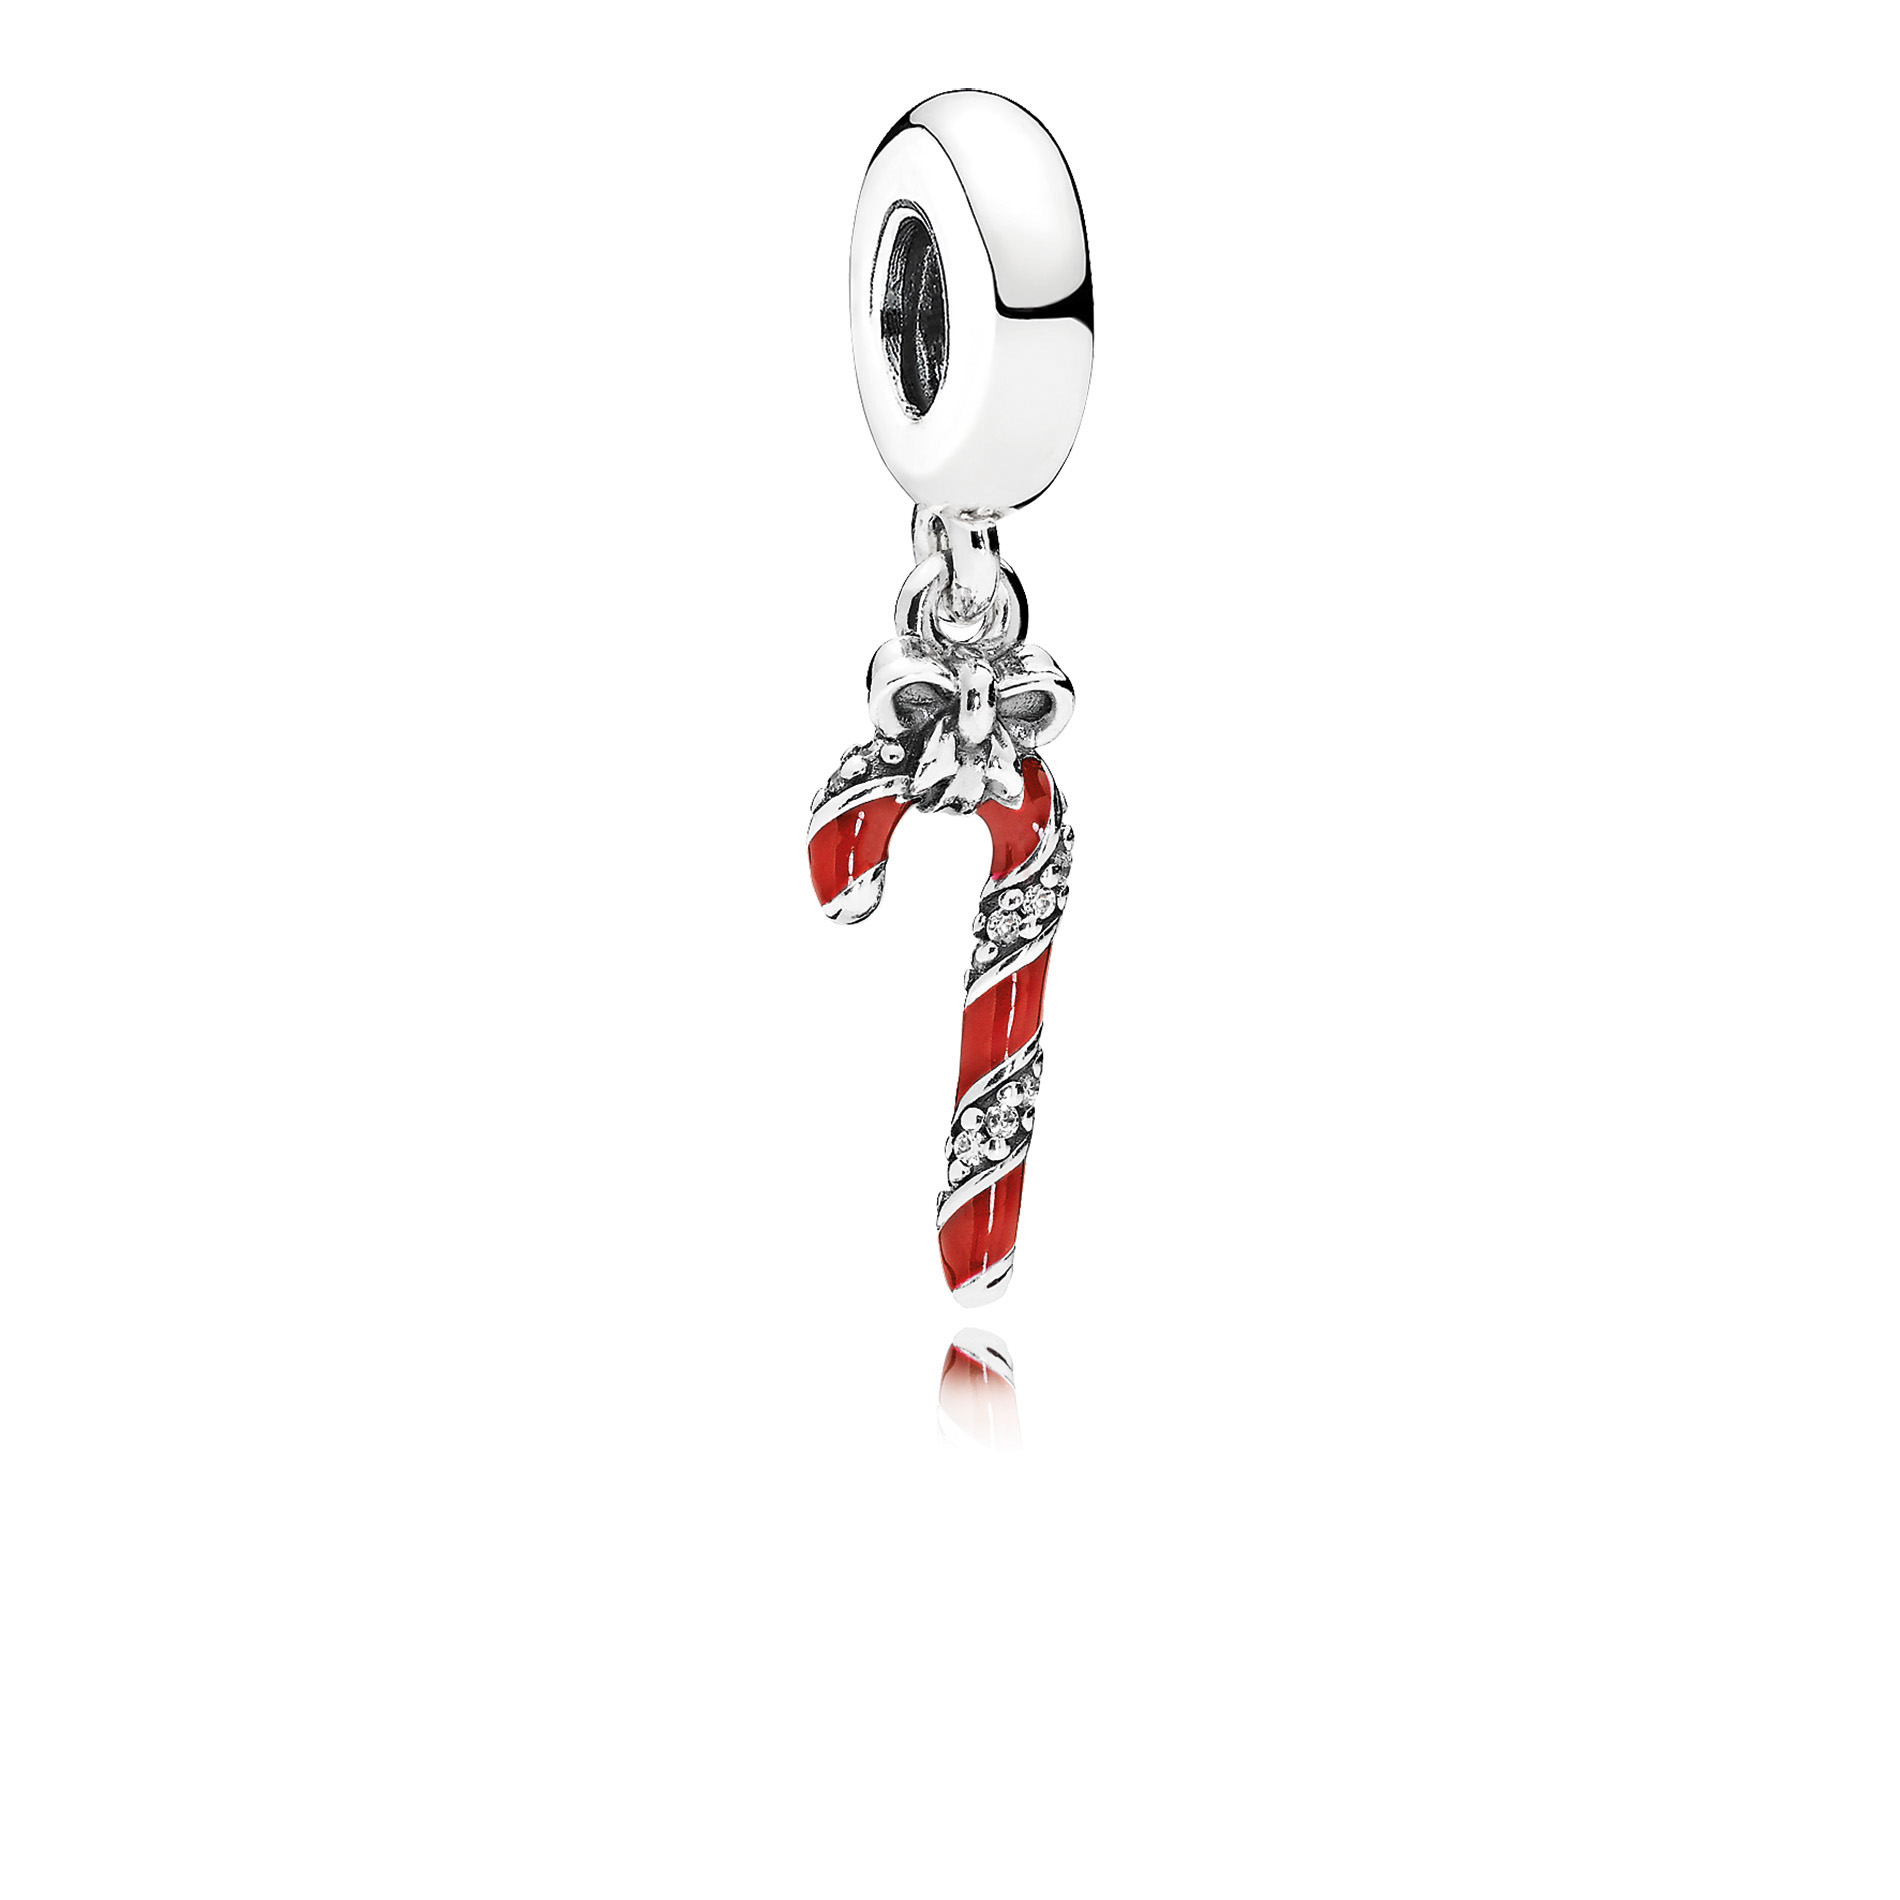 The Sparkling Candy Cane charm is a sweet treat from PANDORA this year